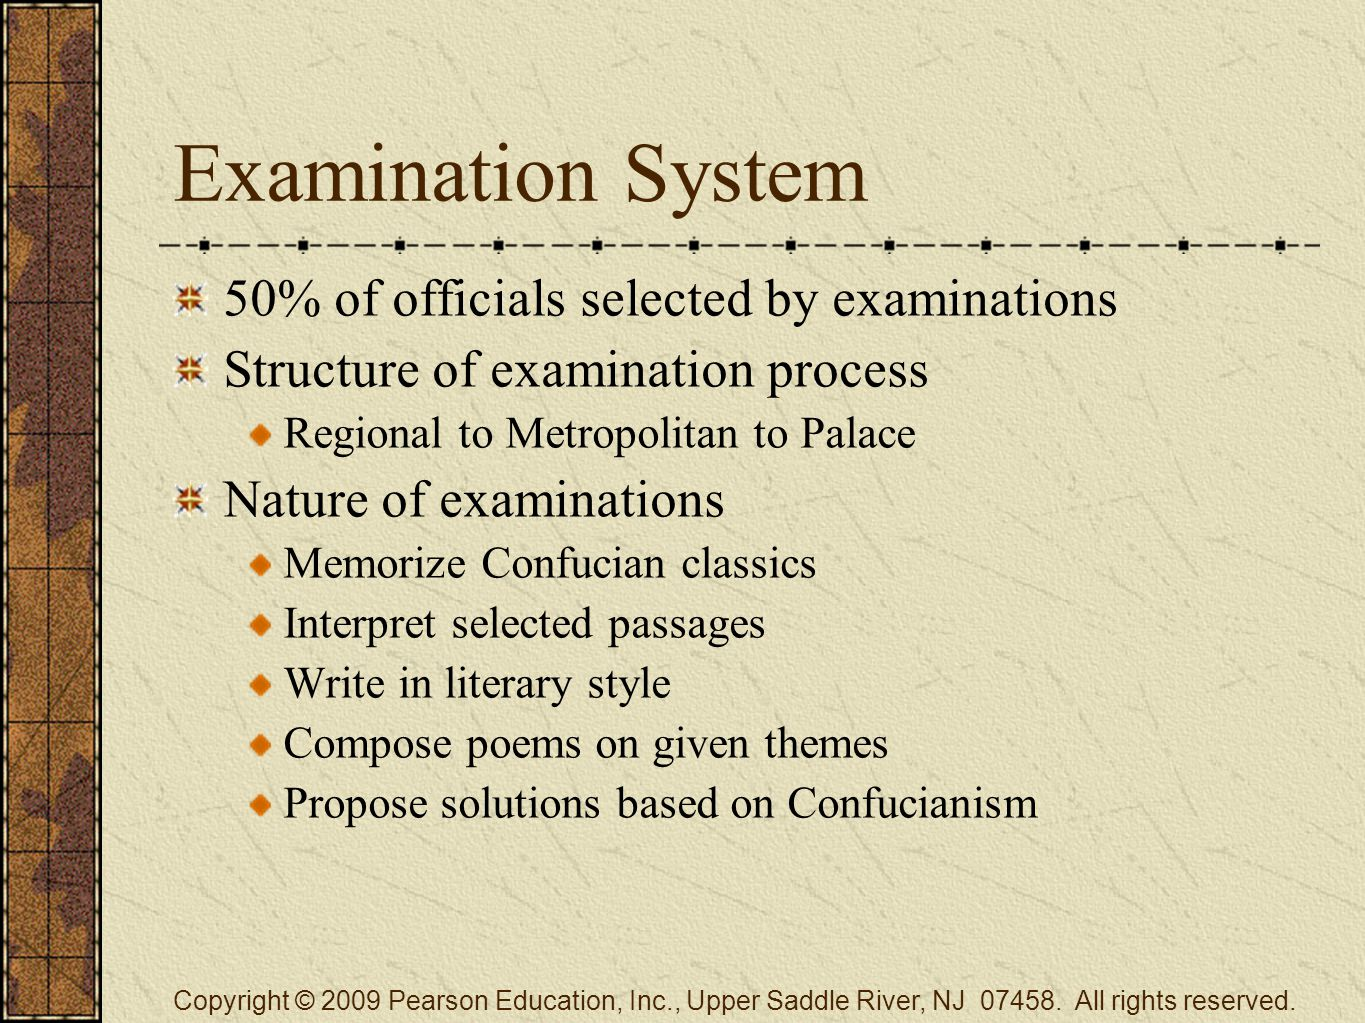 Examination System 50% of officials selected by examinations Structure of examination process Regional to Metropolitan to Palace Nature of examinations Memorize Confucian classics Interpret selected passages Write in literary style Compose poems on given themes Propose solutions based on Confucianism Copyright © 2009 Pearson Education, Inc., Upper Saddle River, NJ 07458.